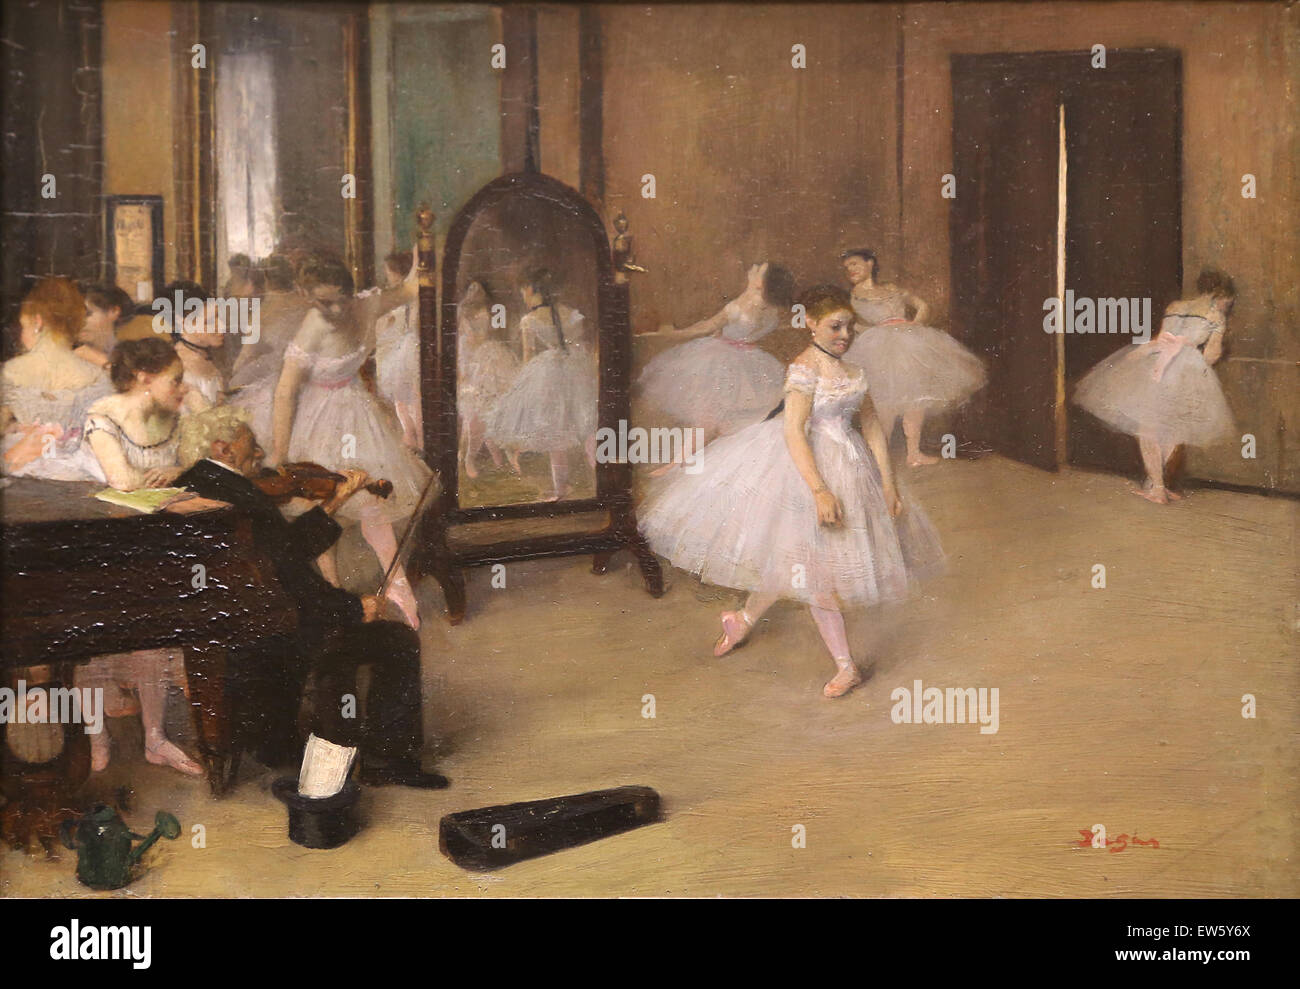 Edgar Degas (1834-1917). French painter. The Dancing Class, 1870. Oil on wood. - Stock Image